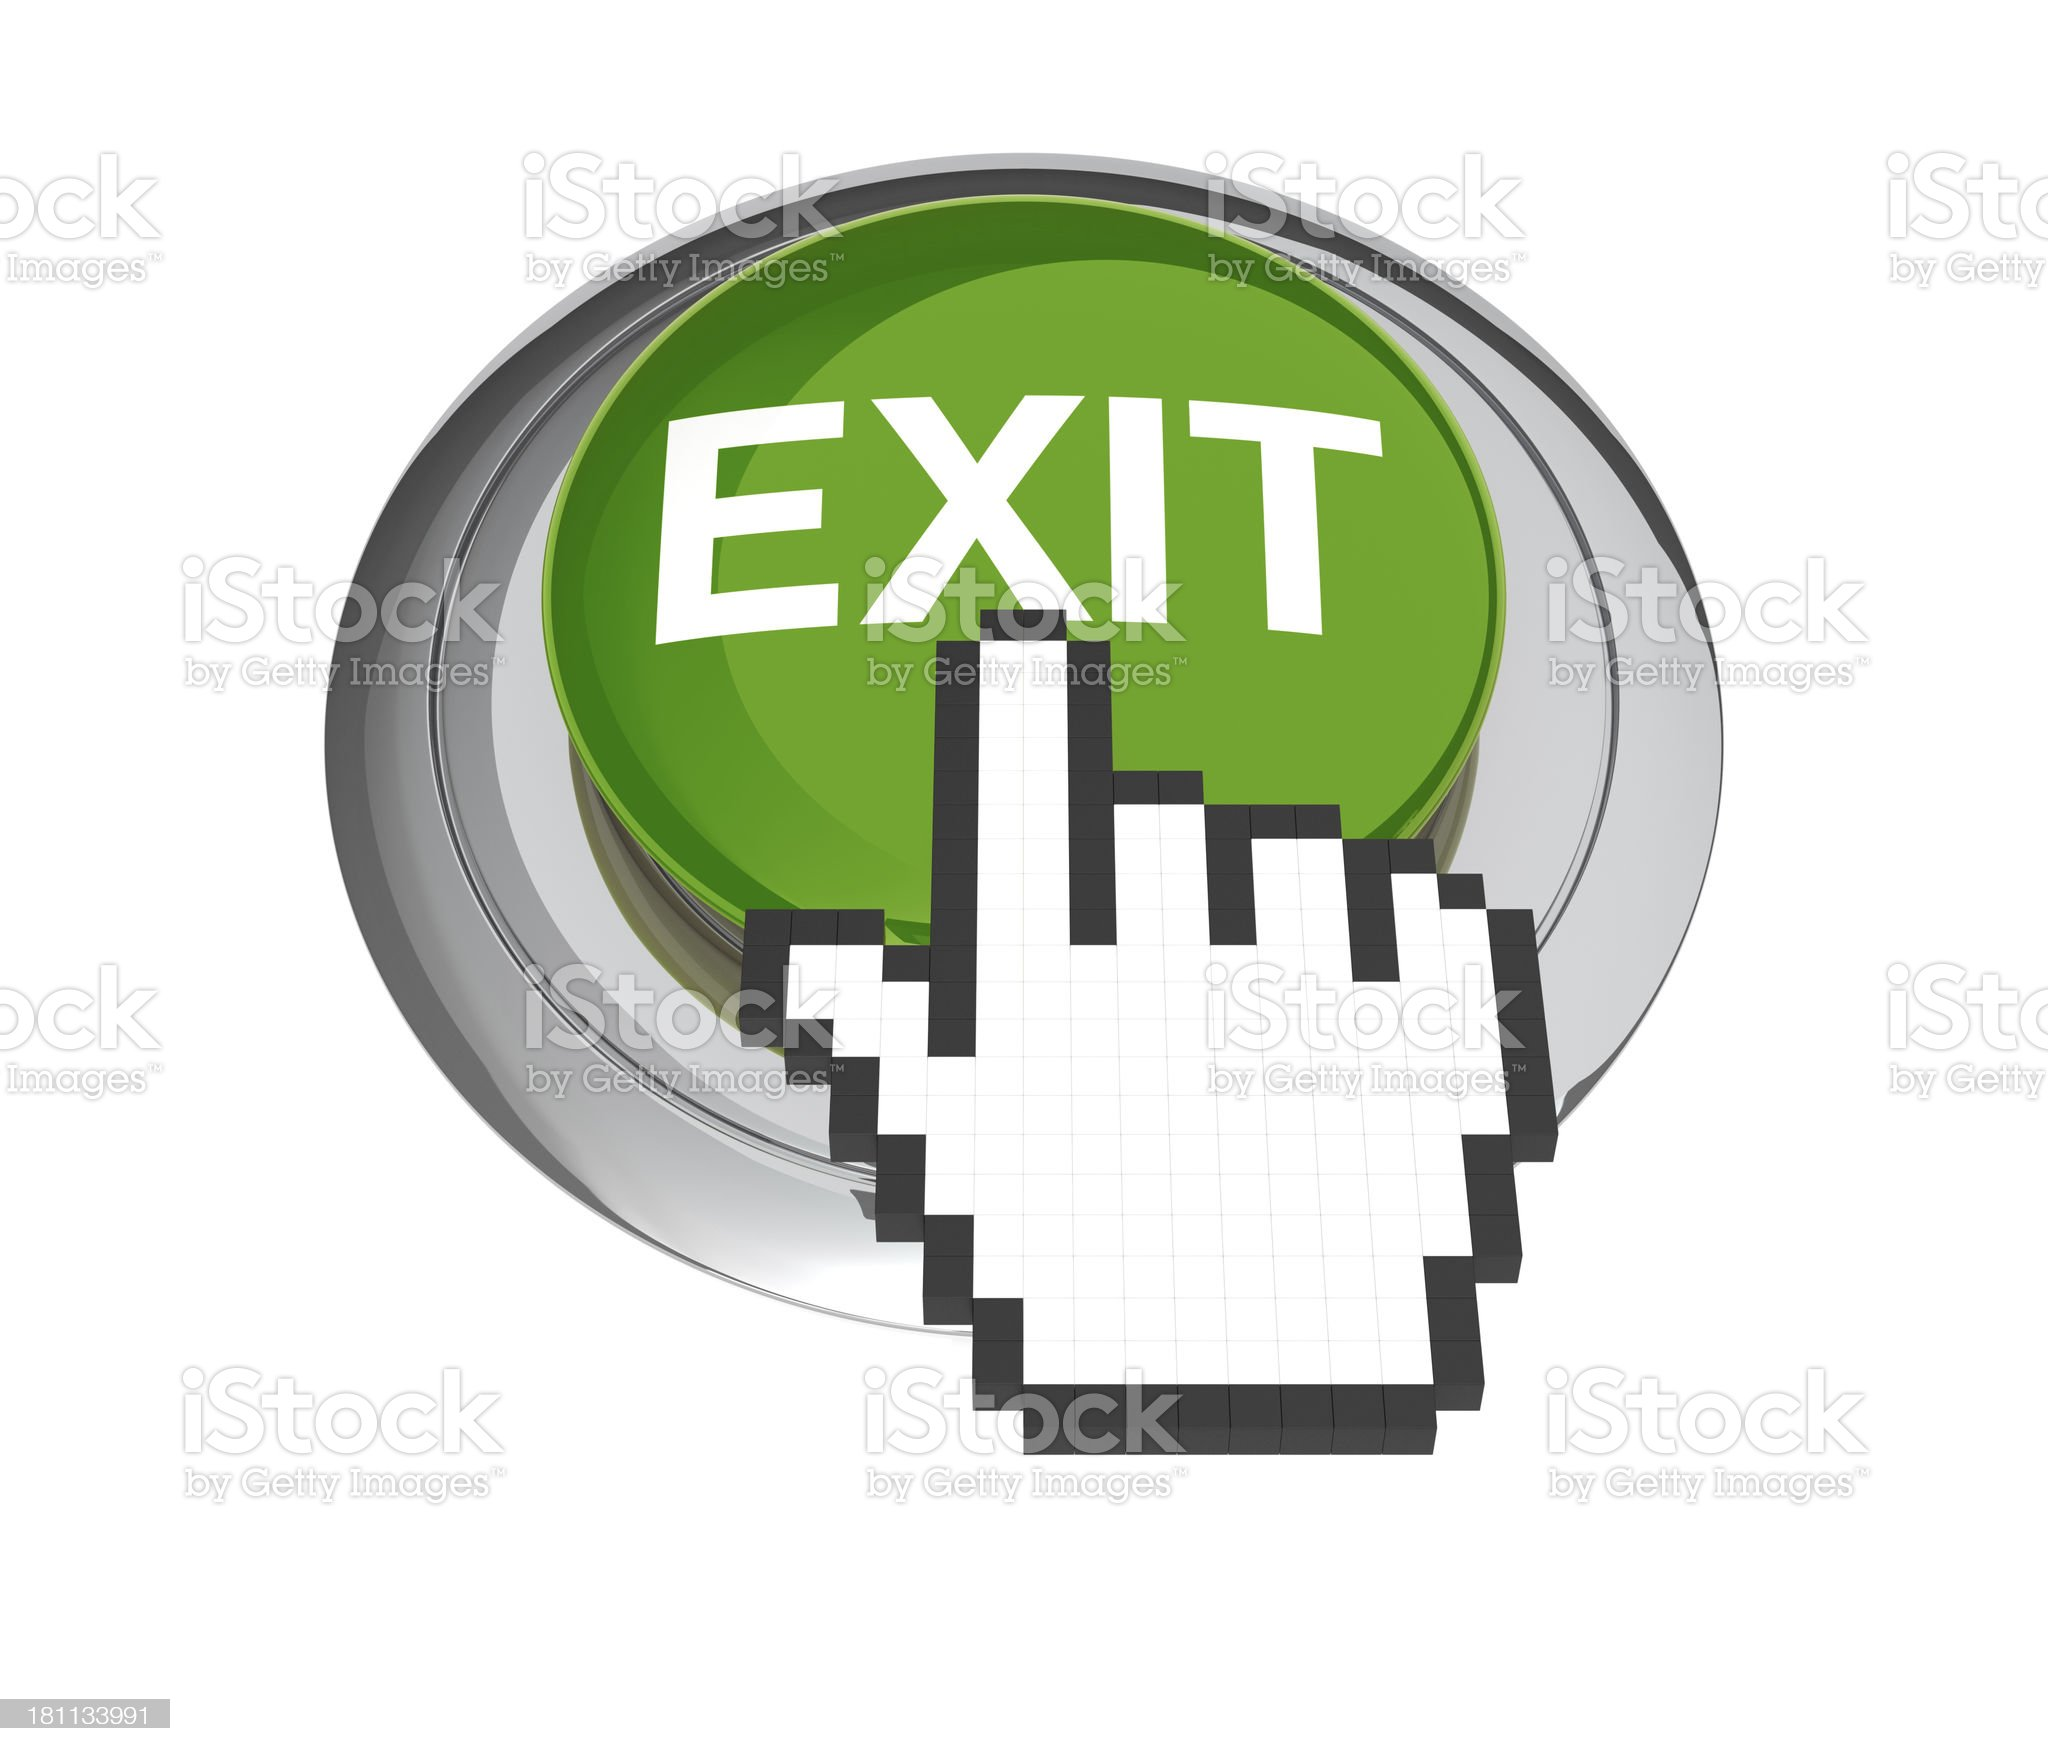 Exit Button royalty-free stock photo